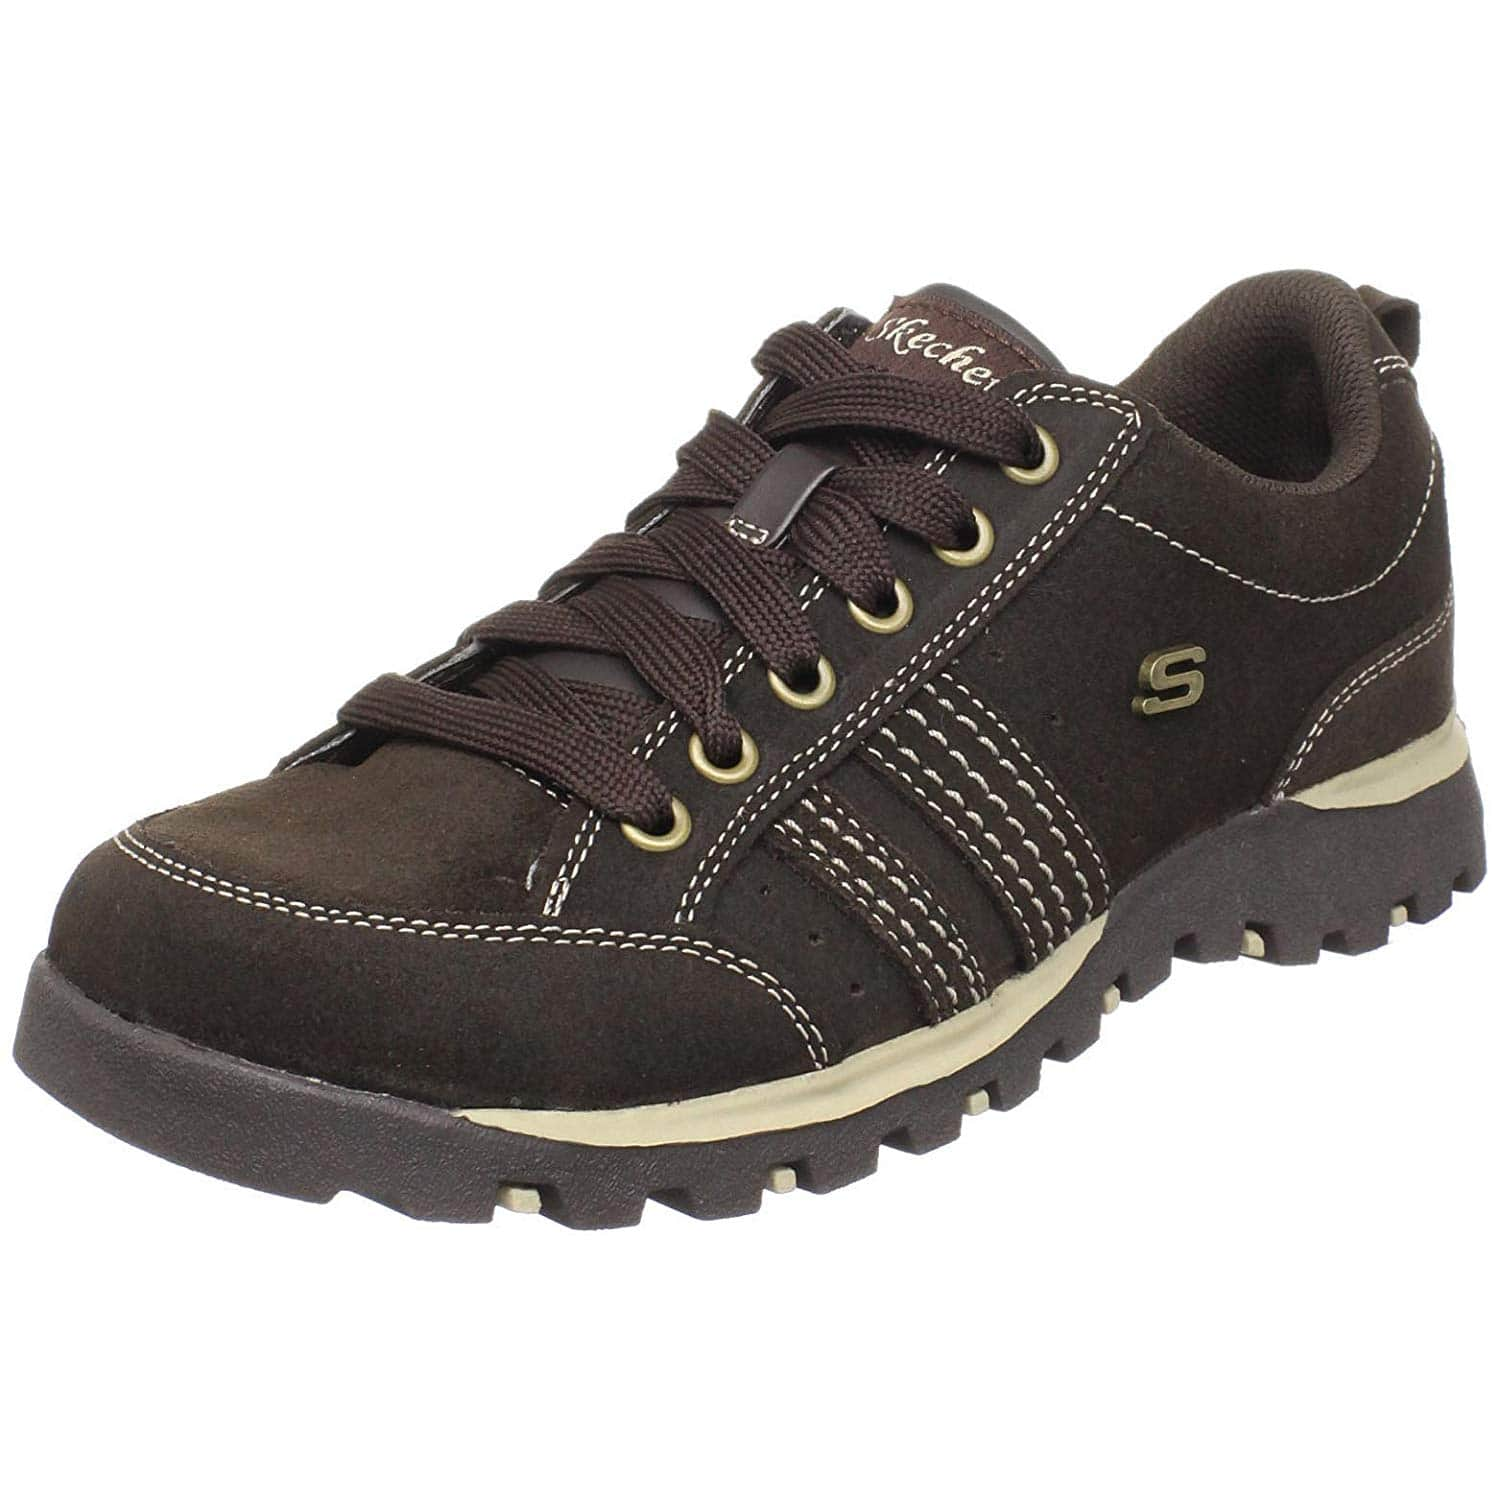 9e740250d0ea4 Women s Skechers Grand Jams Sneakers (Chocolate Suede) - Slickdeals.net